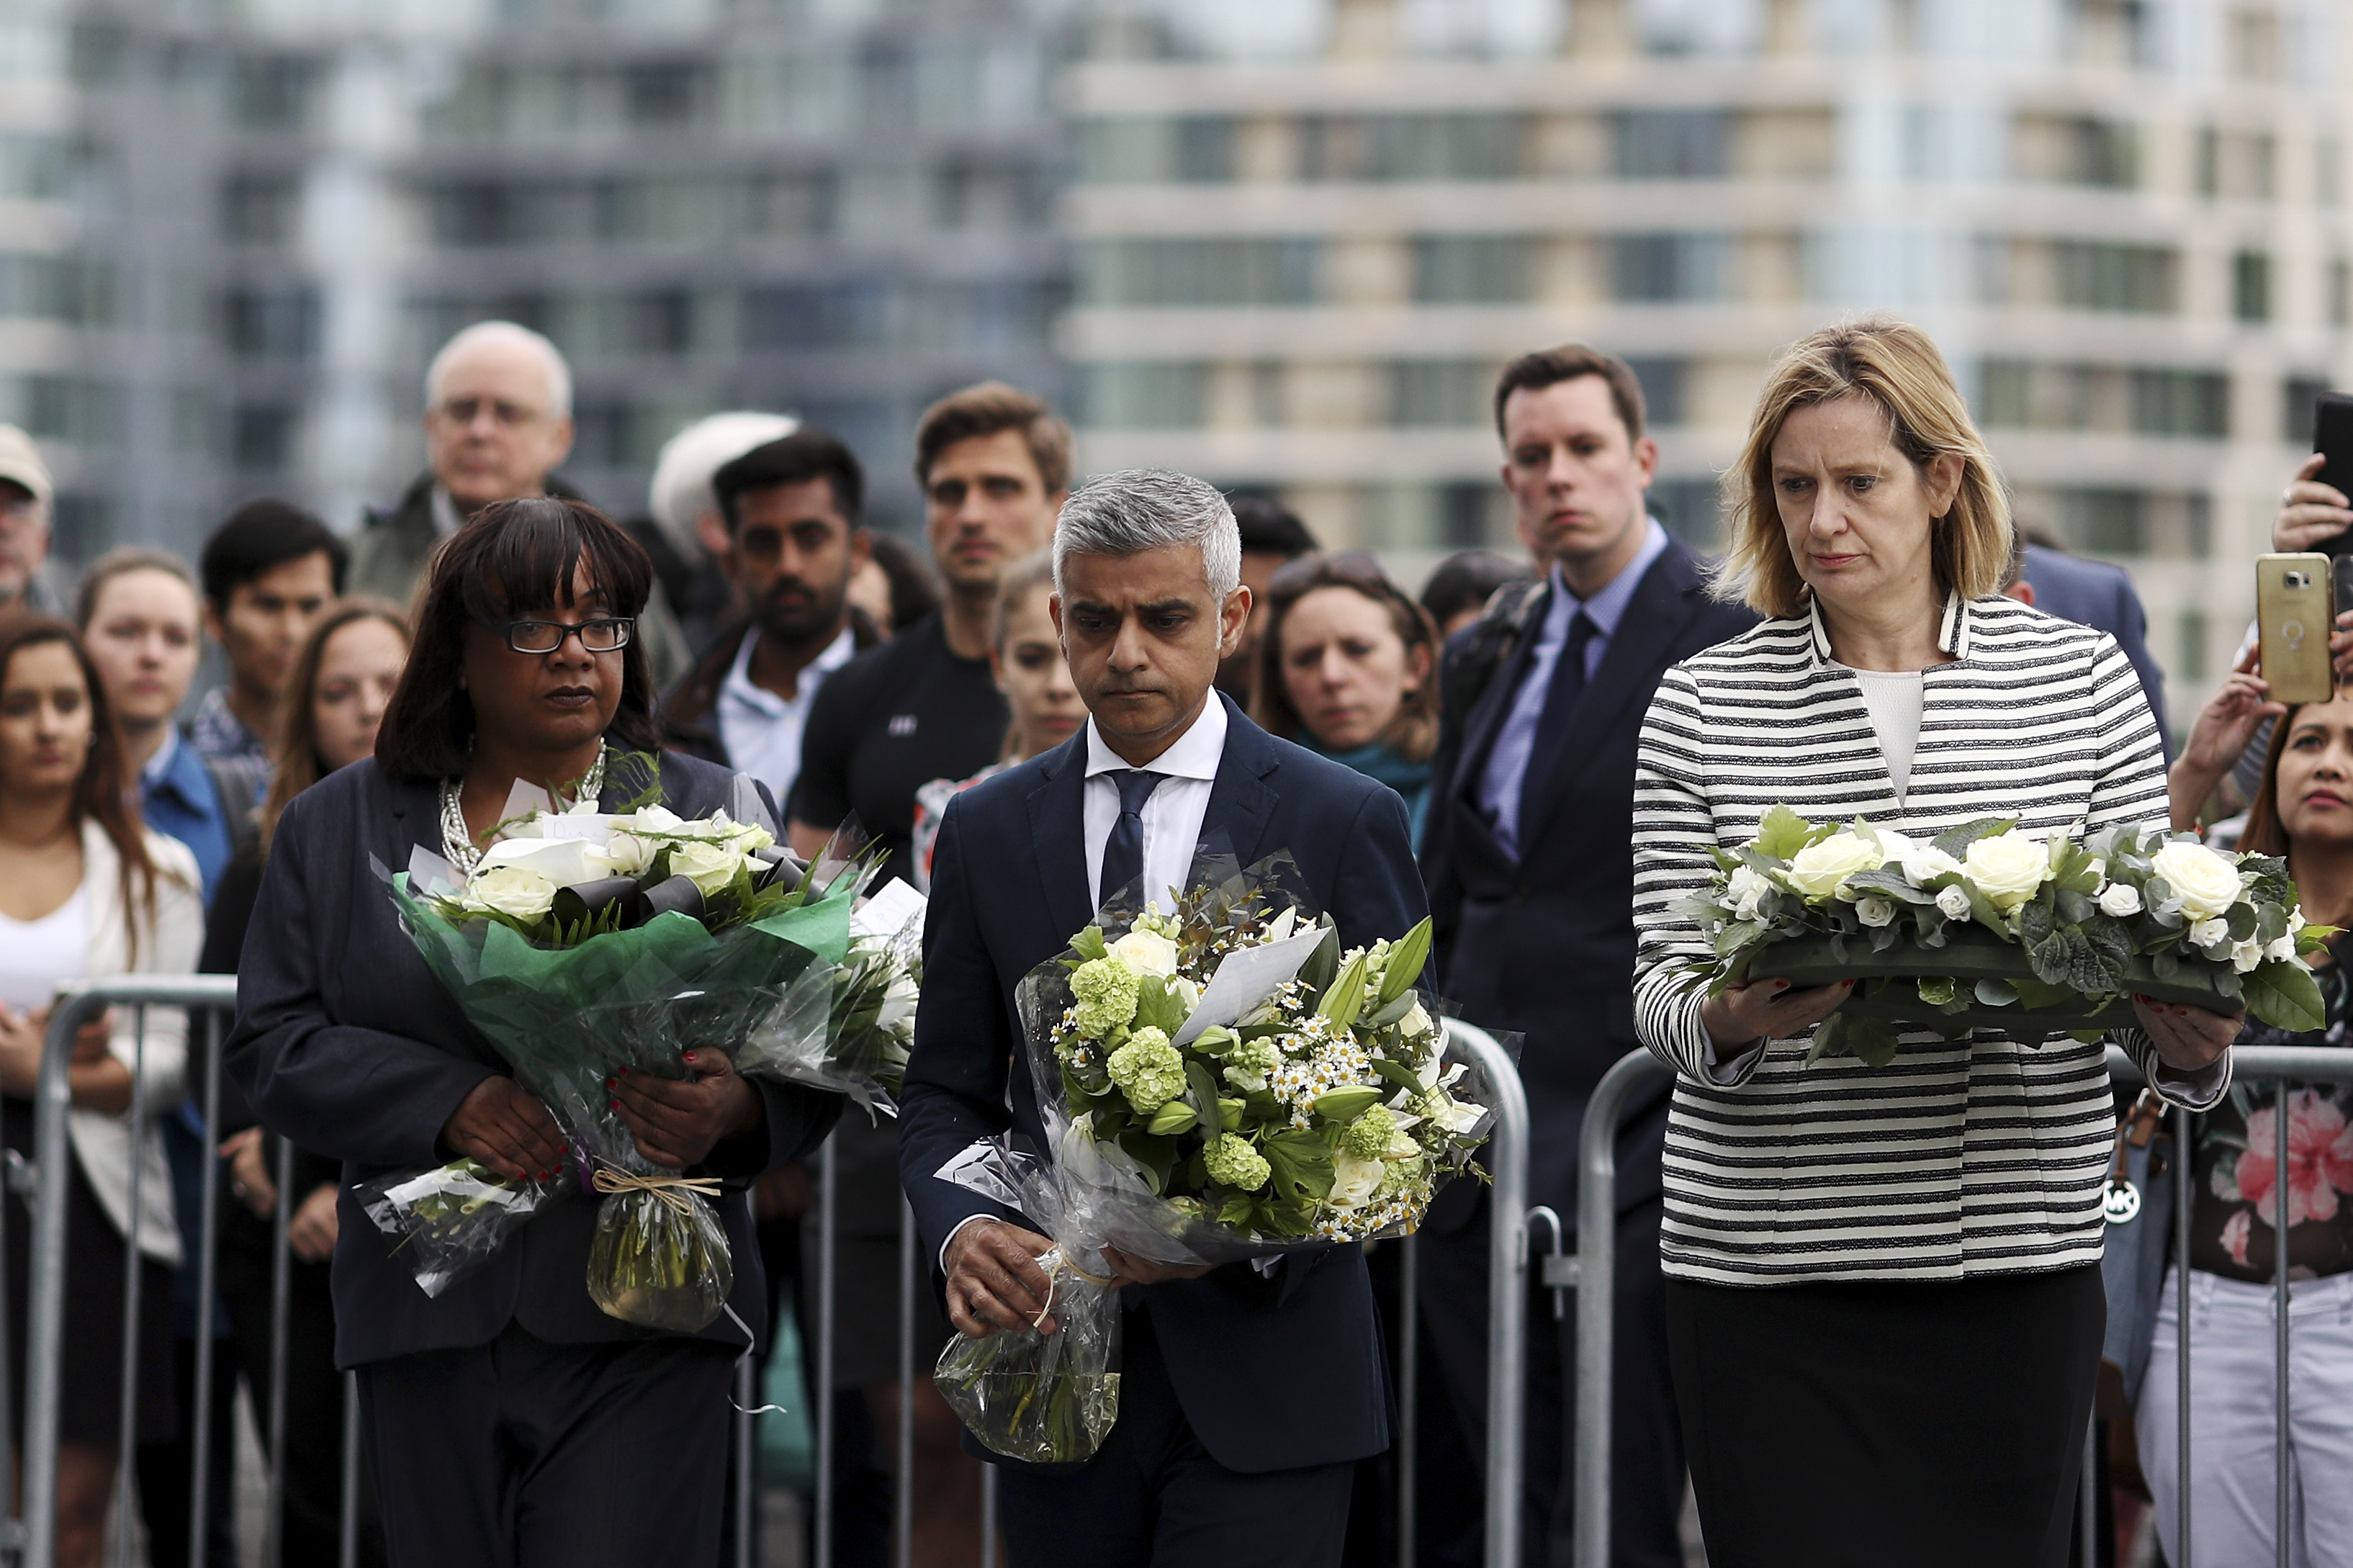 (L-R) Shadow Home Secretary Diane Abbott, Mayor of London Sadiq Khan and Home Secretary Amber Rudd take part in a vigil for the victims of the London Bridge terror attacks, in Potters Fields Park on June 5, 2017 in London.  (Photo by Dan Kitwood/Getty Images)